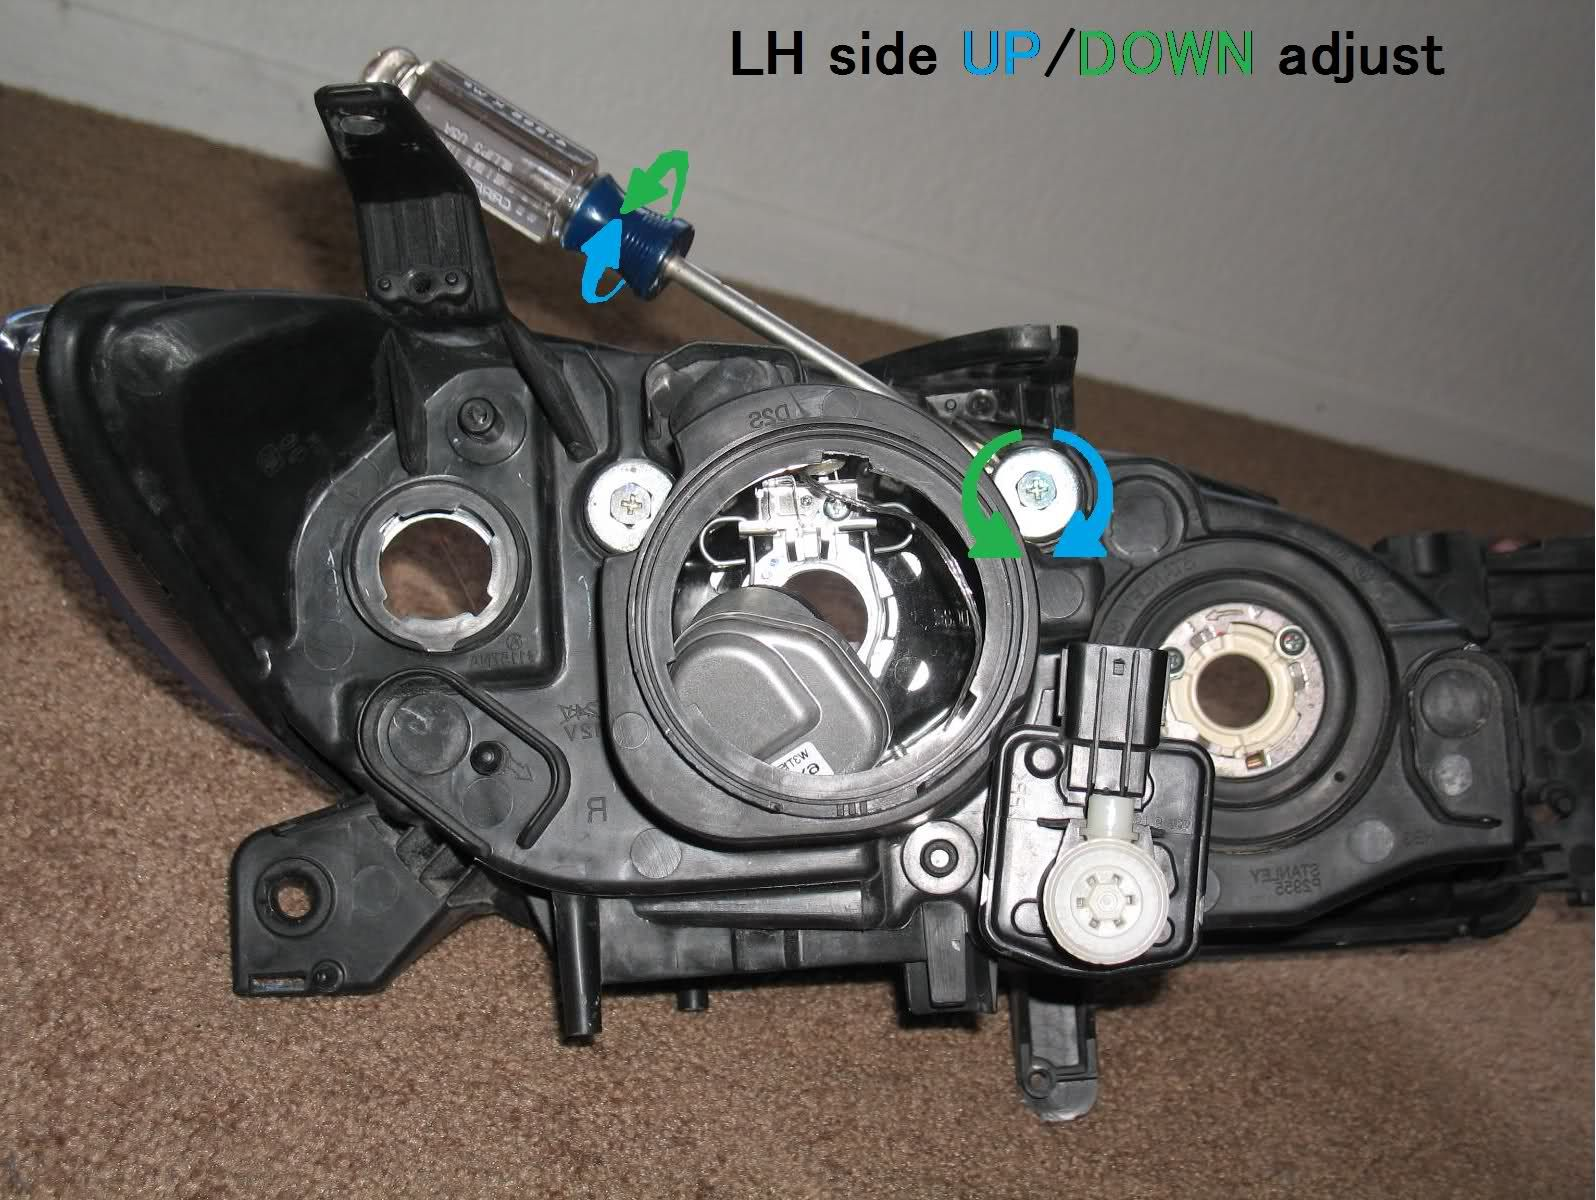 2006 Mazda 3 Headlight Adjustment Google Search